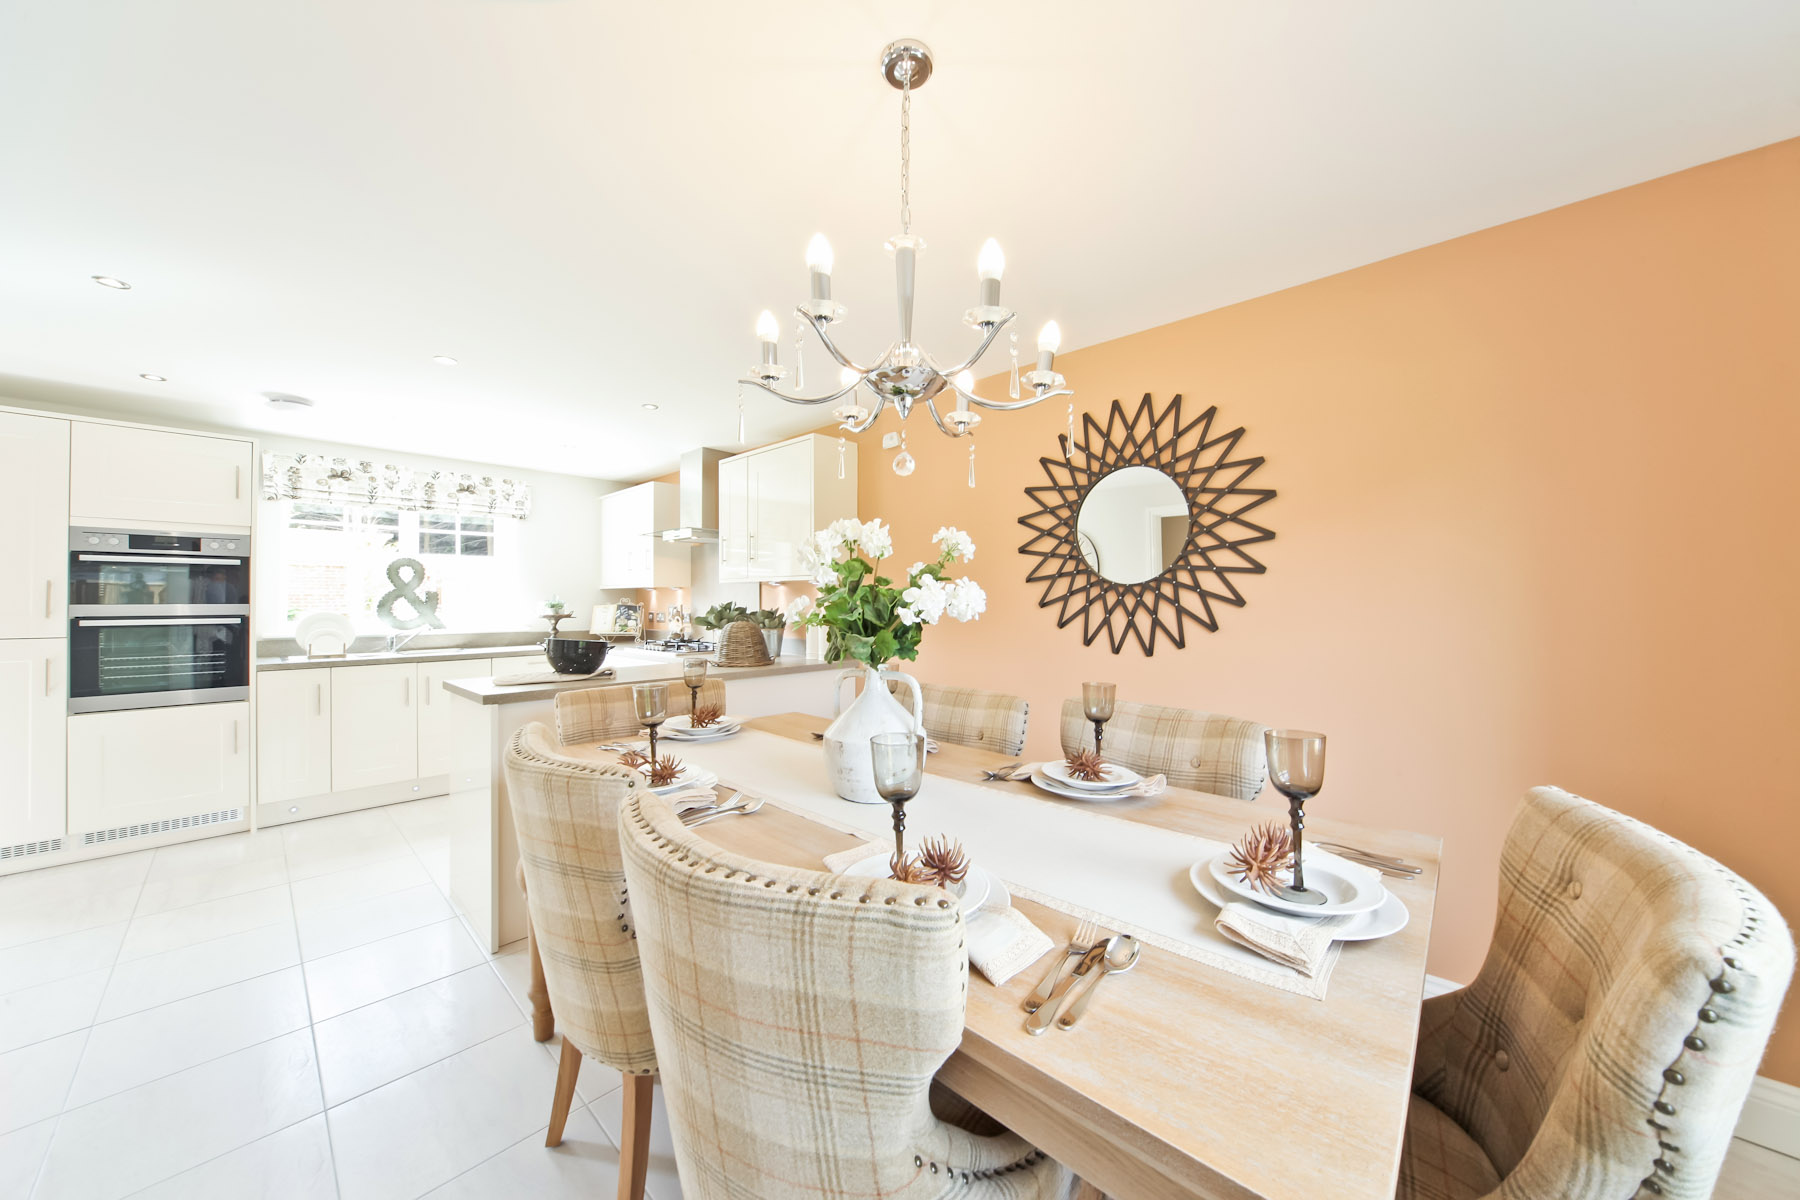 TW Exeter - Rackenford Meadow - Eskdale example kitchen 2